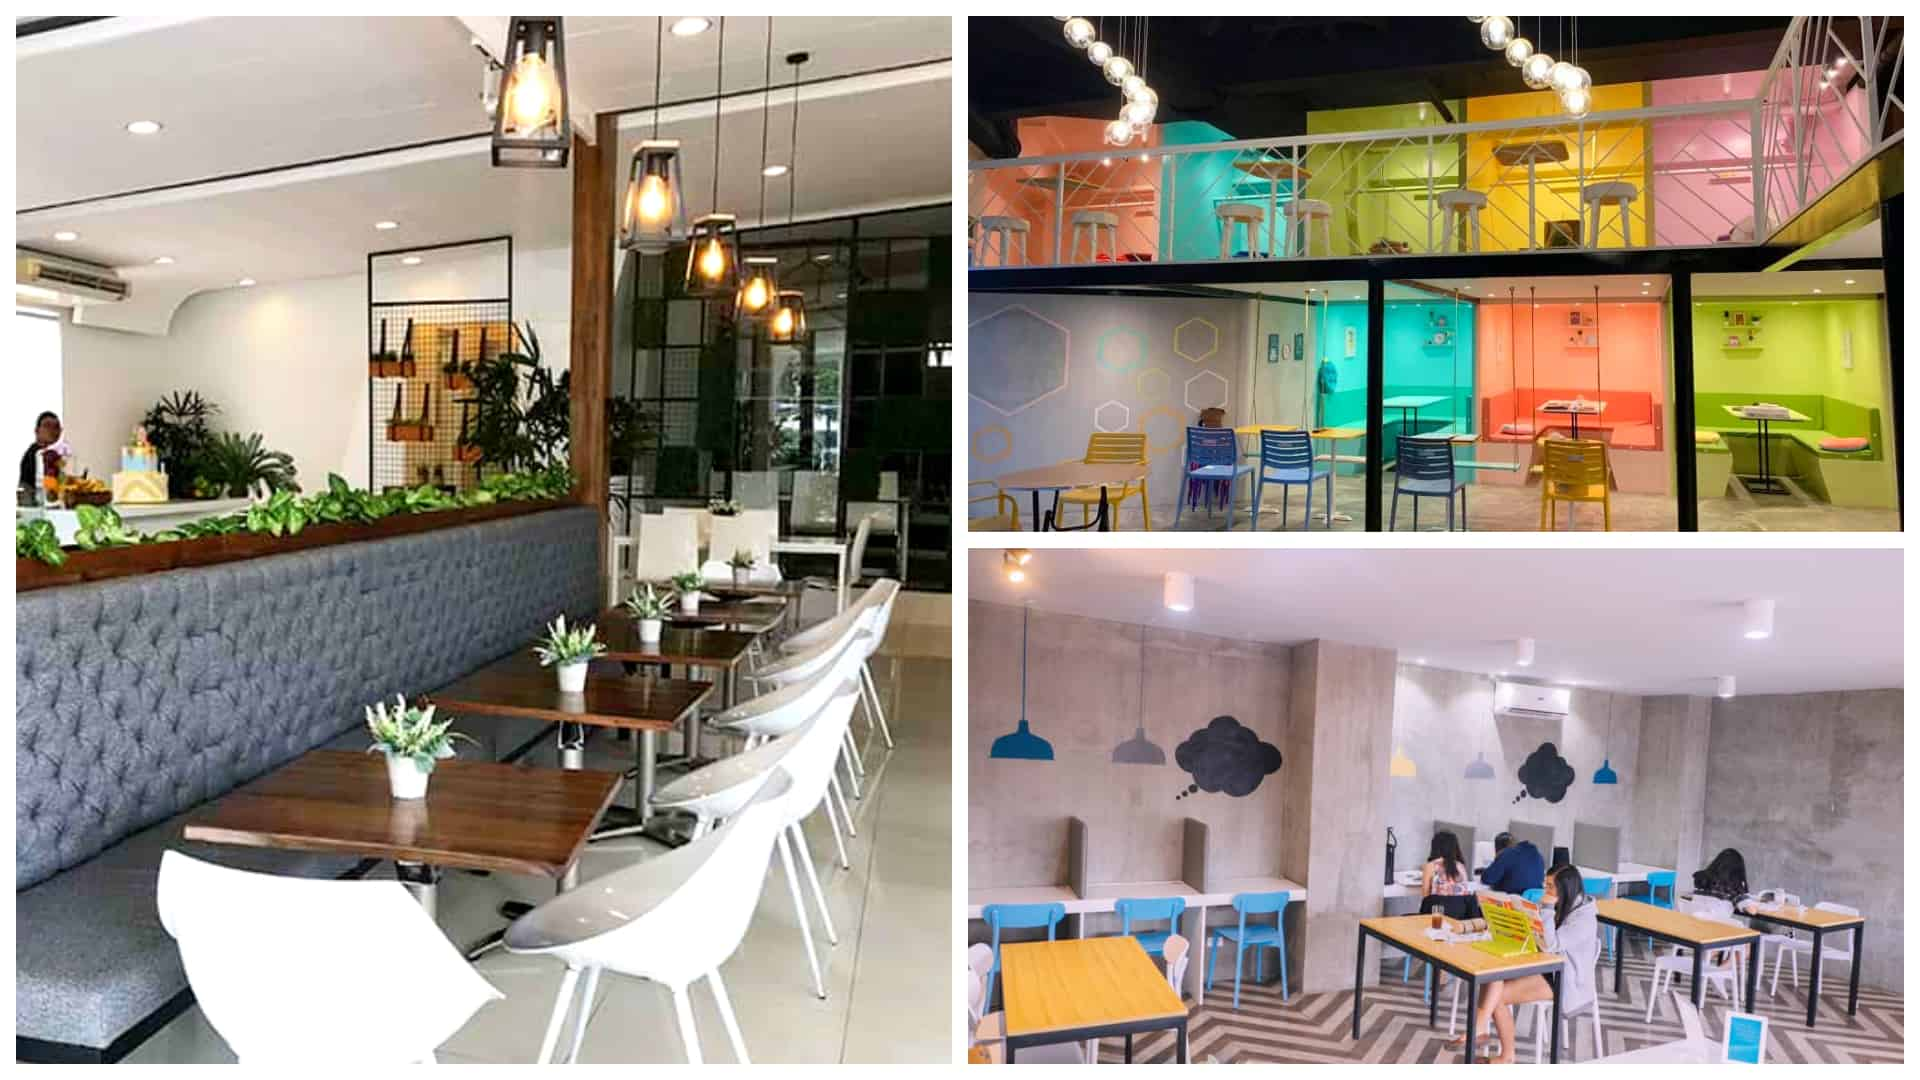 Top 10 Places In Cebu City To Boost Productivity For Work Or Study Sugbo Ph Cebu